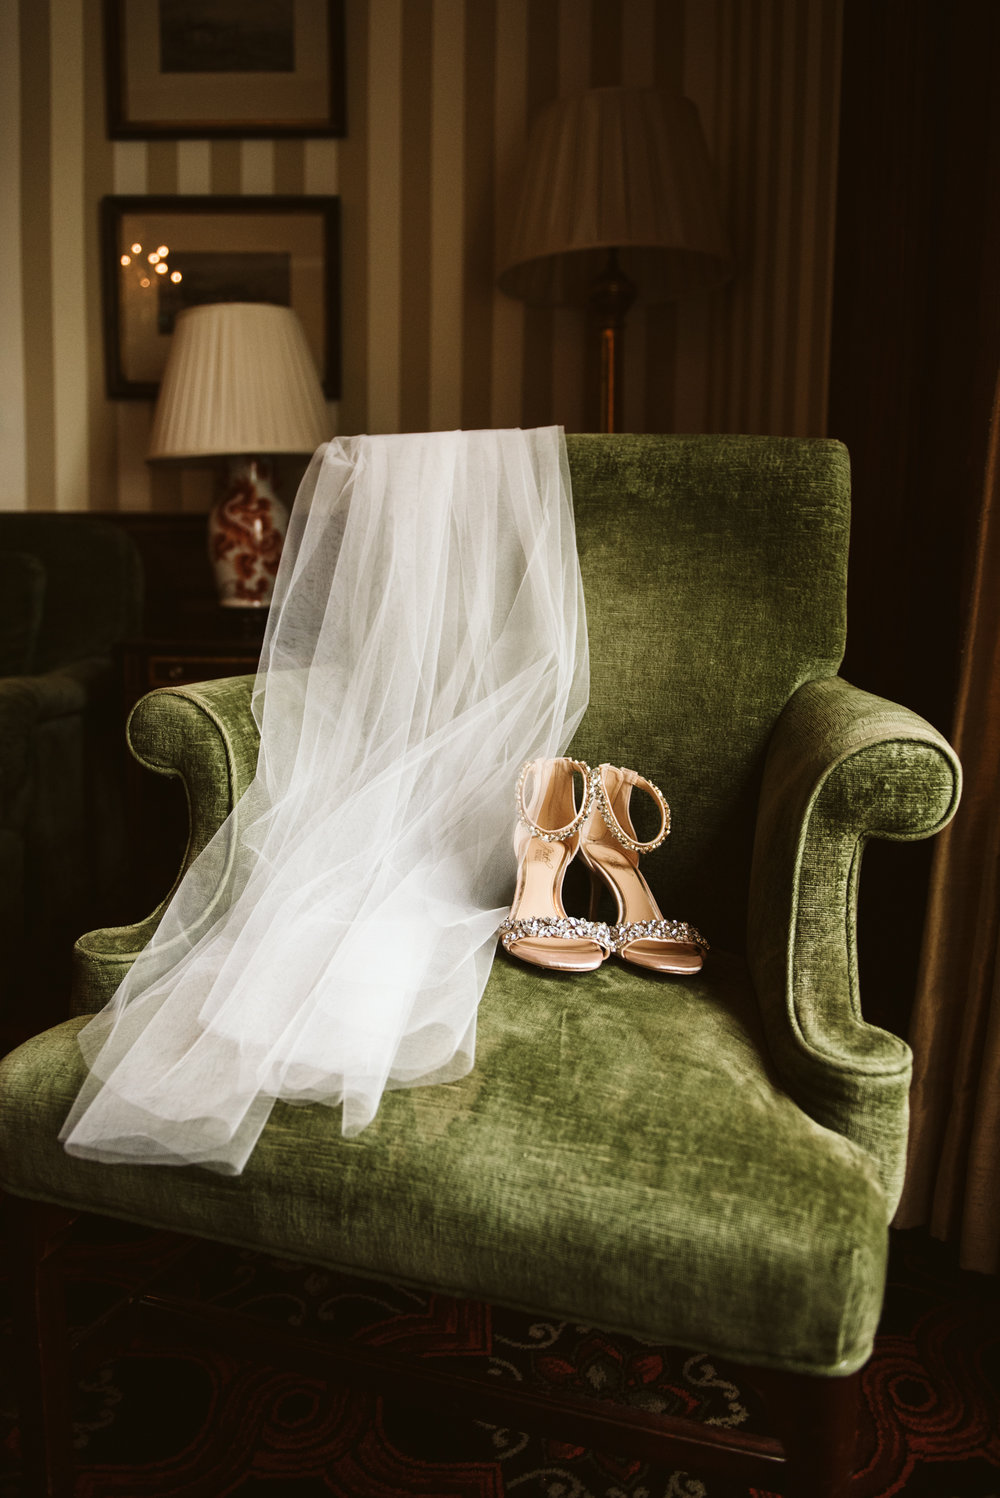 Elegant, Columbia Country Club, Chevy Chase Maryland, Baltimore Wedding Photographer, Classic, Traditional, Detail Photo of Veil and Shoes on Green Velvet Chair